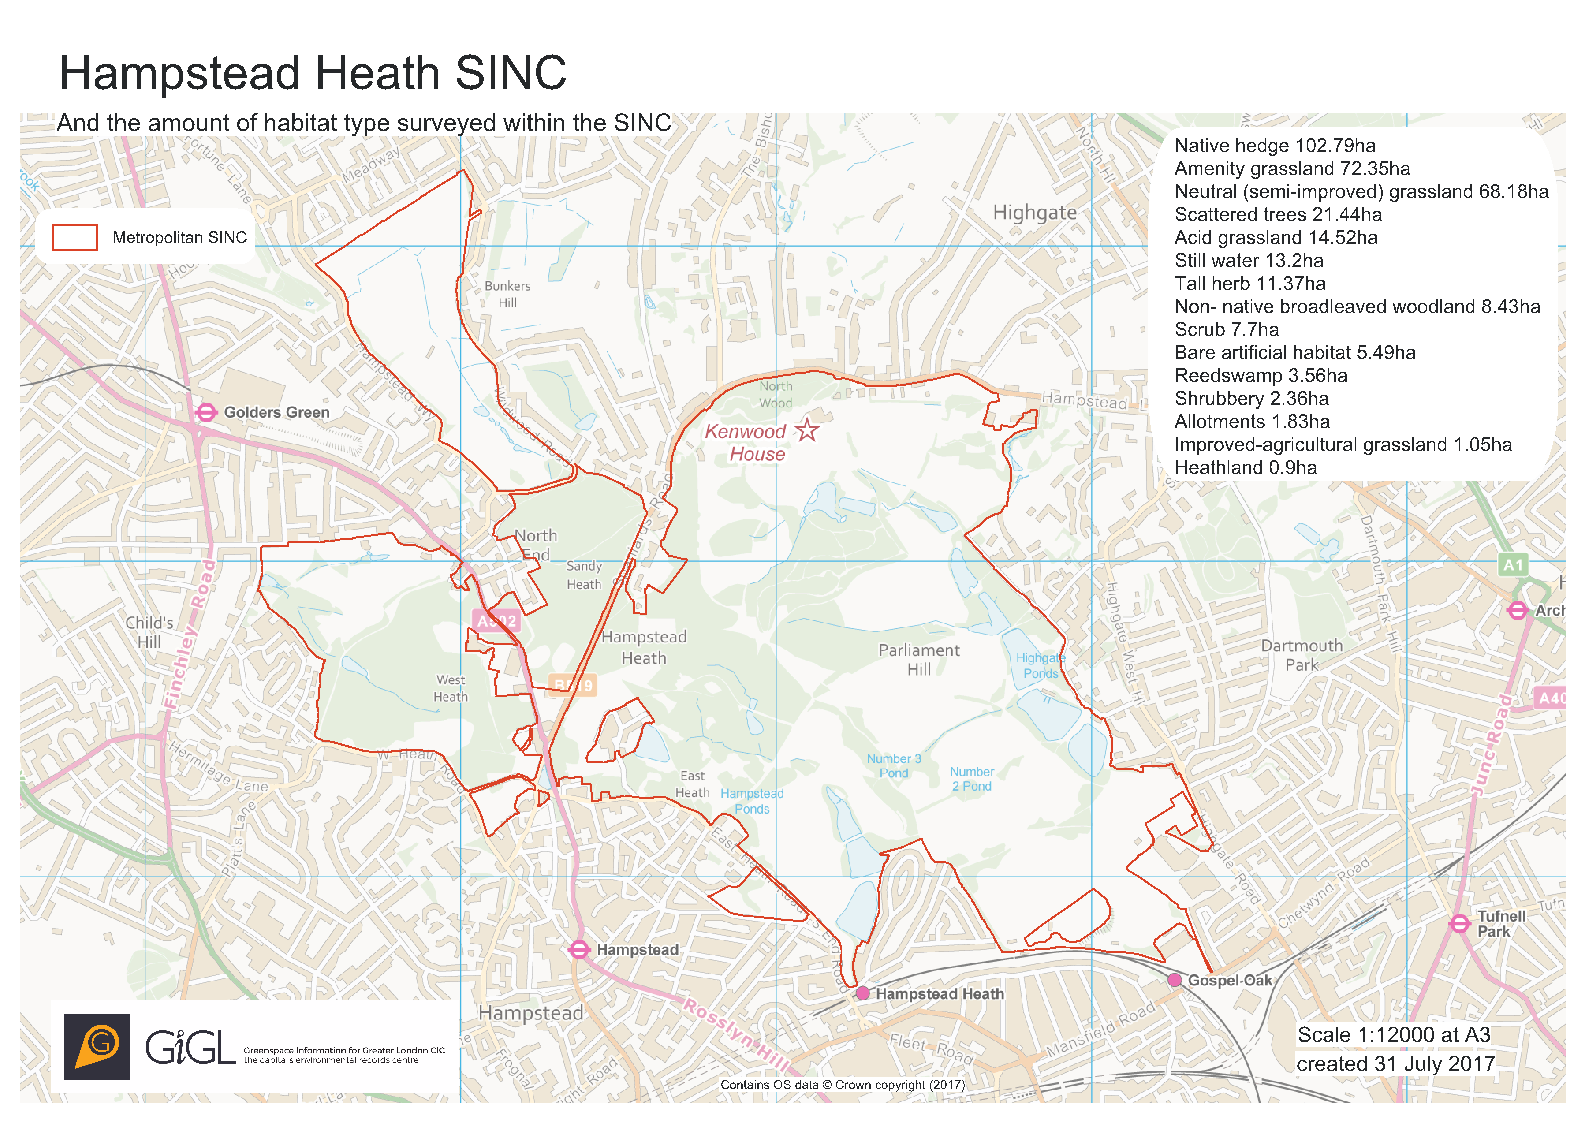 Hampstead Heath SINC